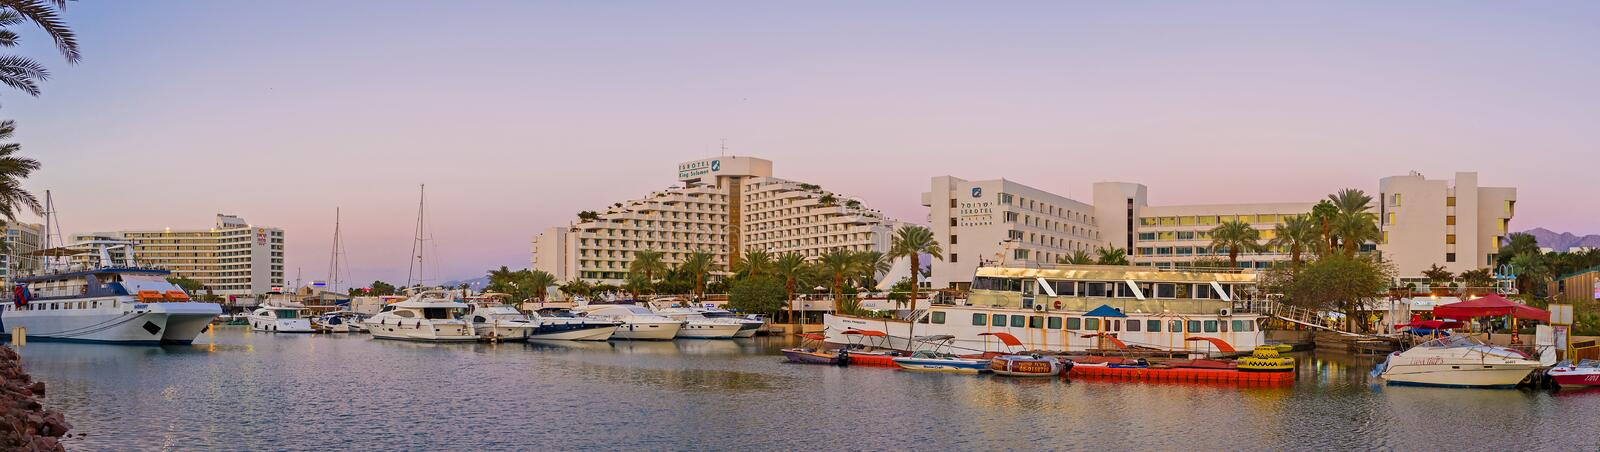 The evening in marina of Eilat. EILAT, ISRAEL - FEBRUARY 23, 2016: The view from the bridge on the wide marina and the tourist neighborhood, located around it stock photo